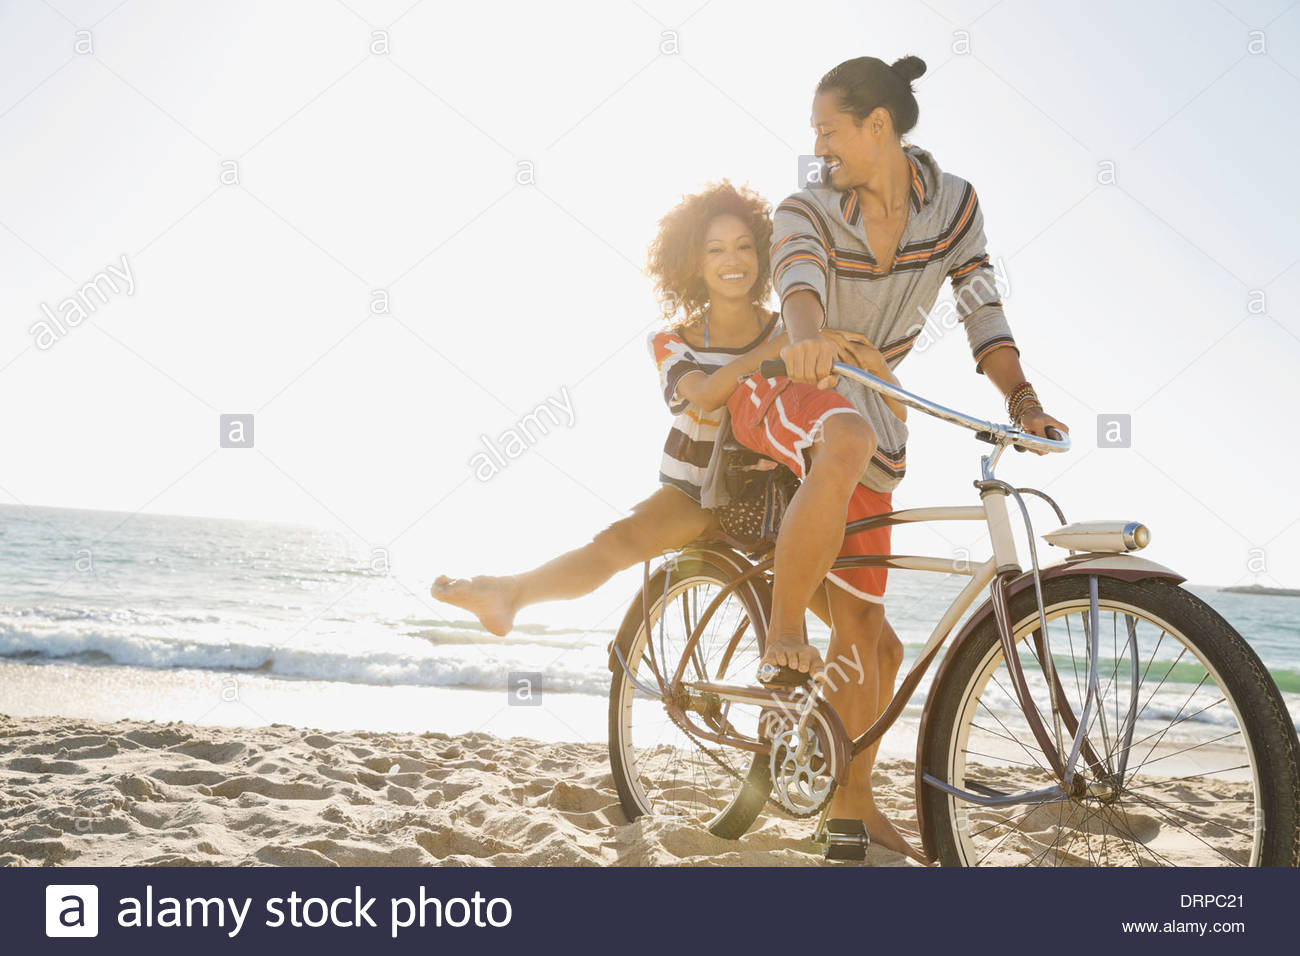 Couple enjoying bicycle ride on beach - Stock Image